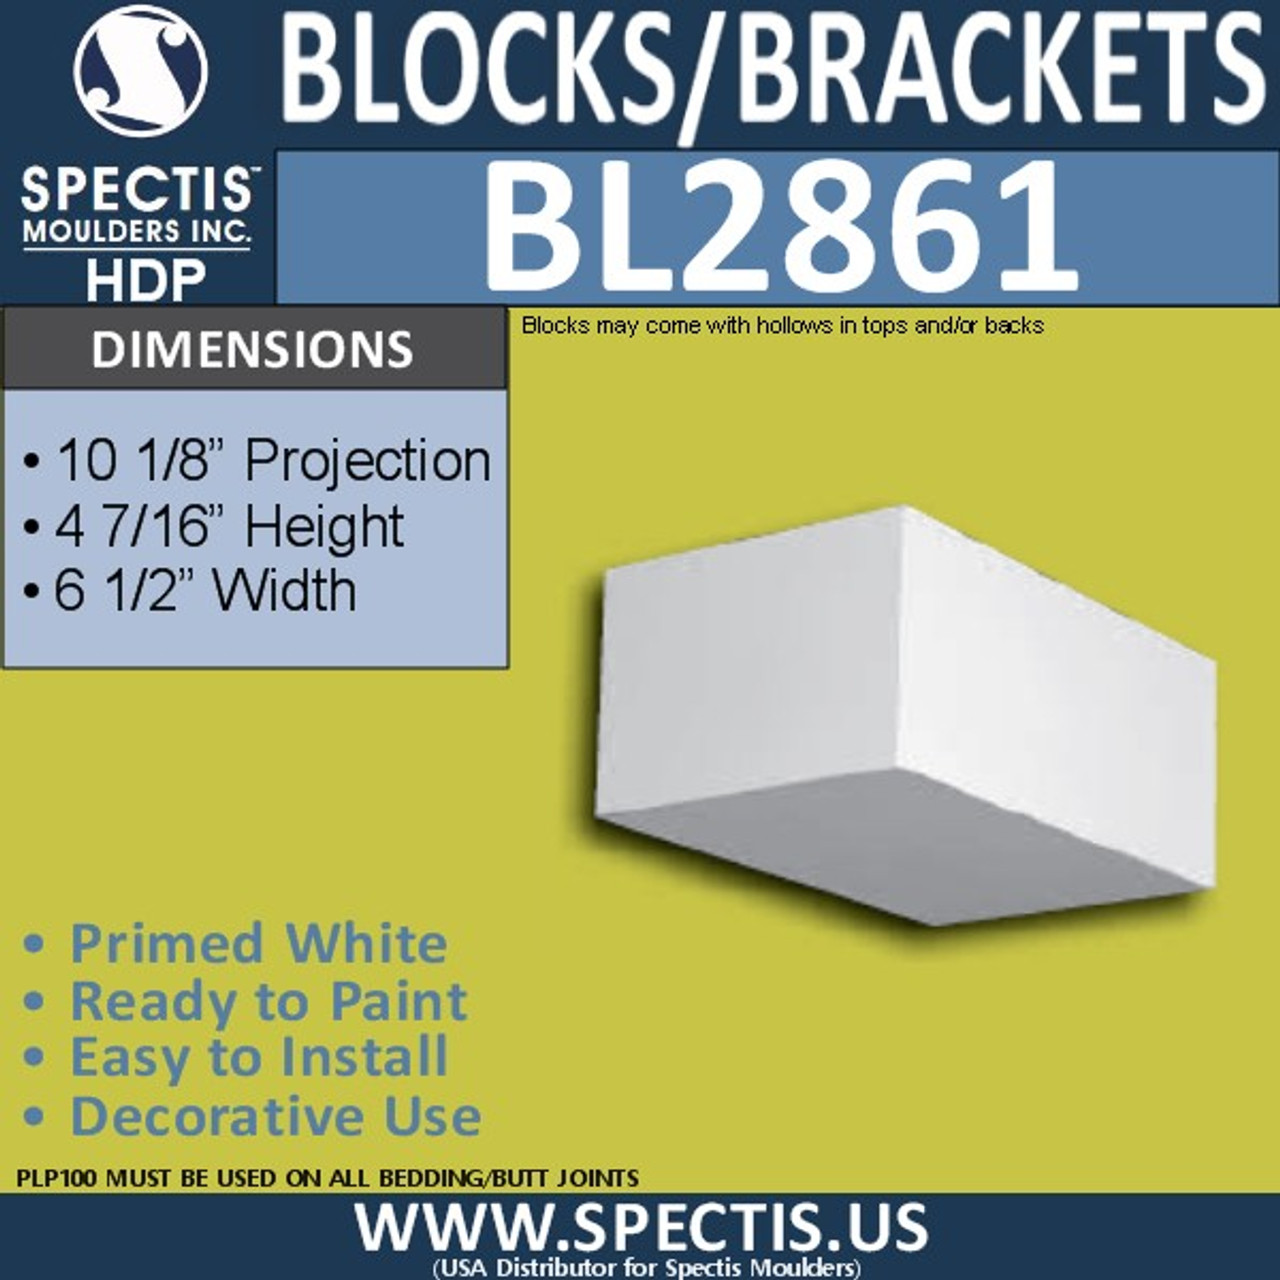 "BL2861 Eave Block or Bracket 6.5""W x 4.5""H x 10.2"" P"